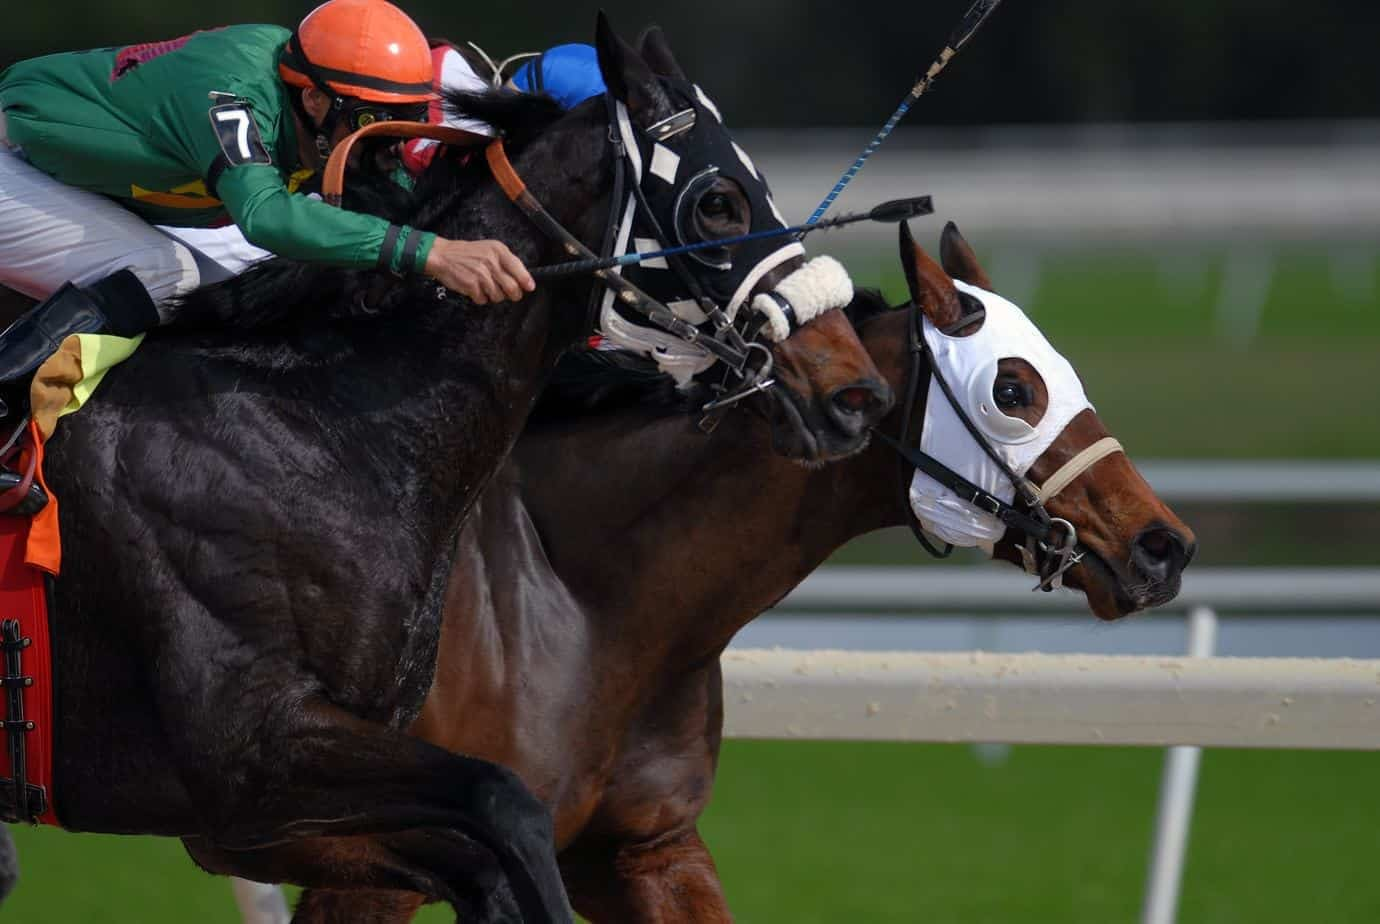 Mlb betting pick of the day horses football betting strategy home underdogs